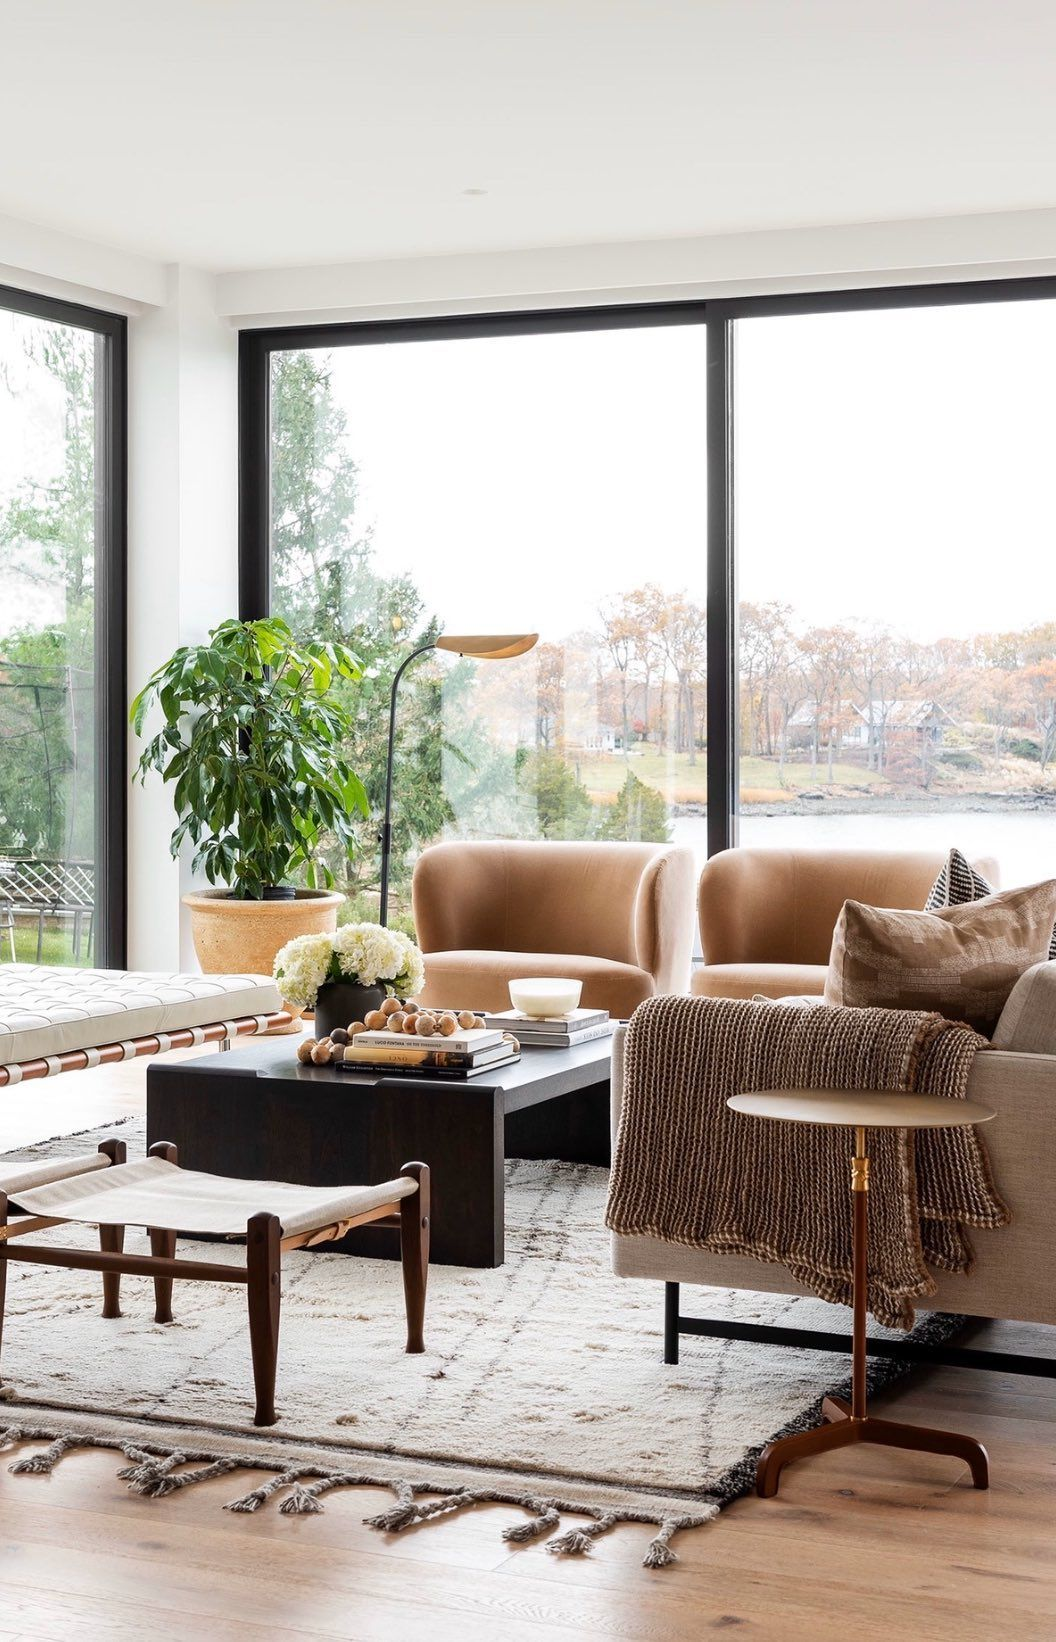 Studio Mcgee On Instagram Our Latest Project Has Views On Views Take A Trip To Rye New York And See House Interior Home Decor Living Room Inspiration